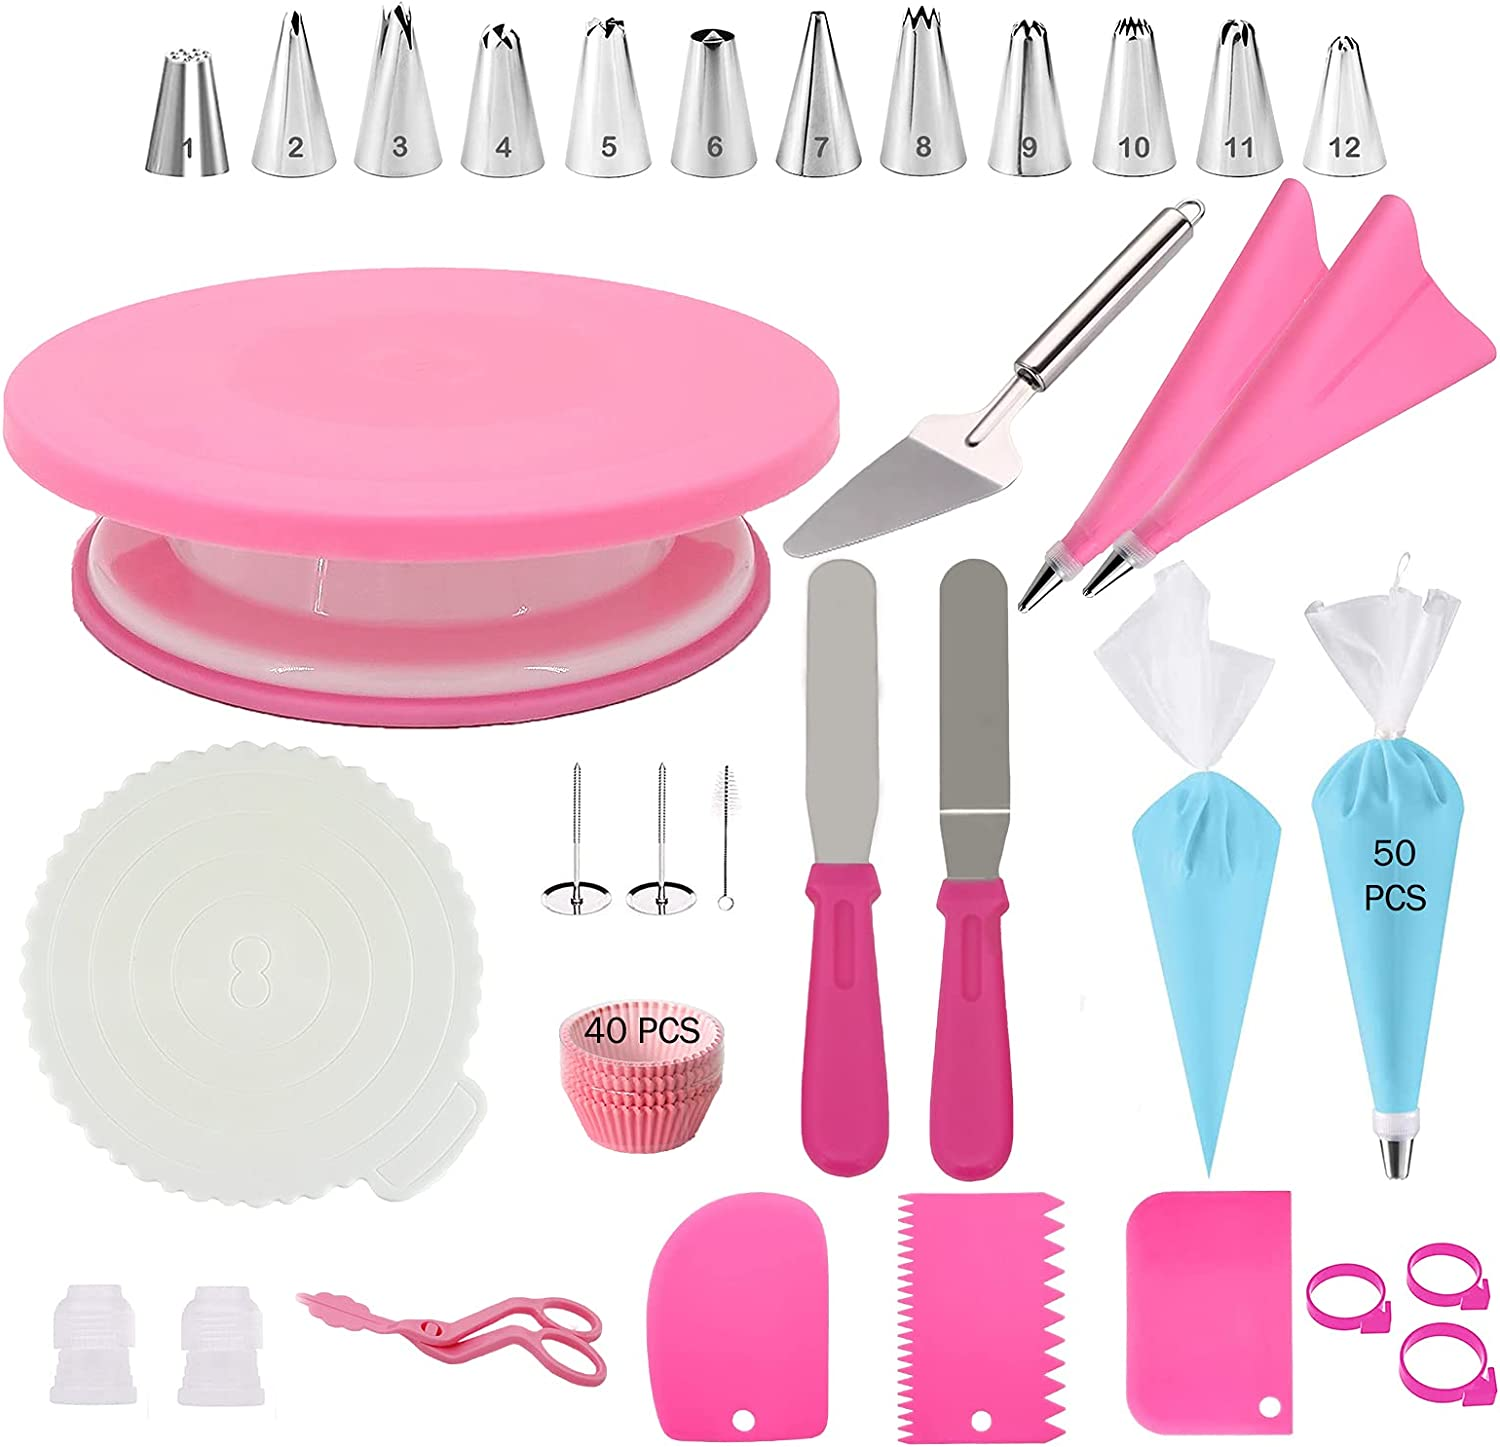 Pink trend rank Cake Decorating Kit PCS Sale Special Price Supplies wi 121